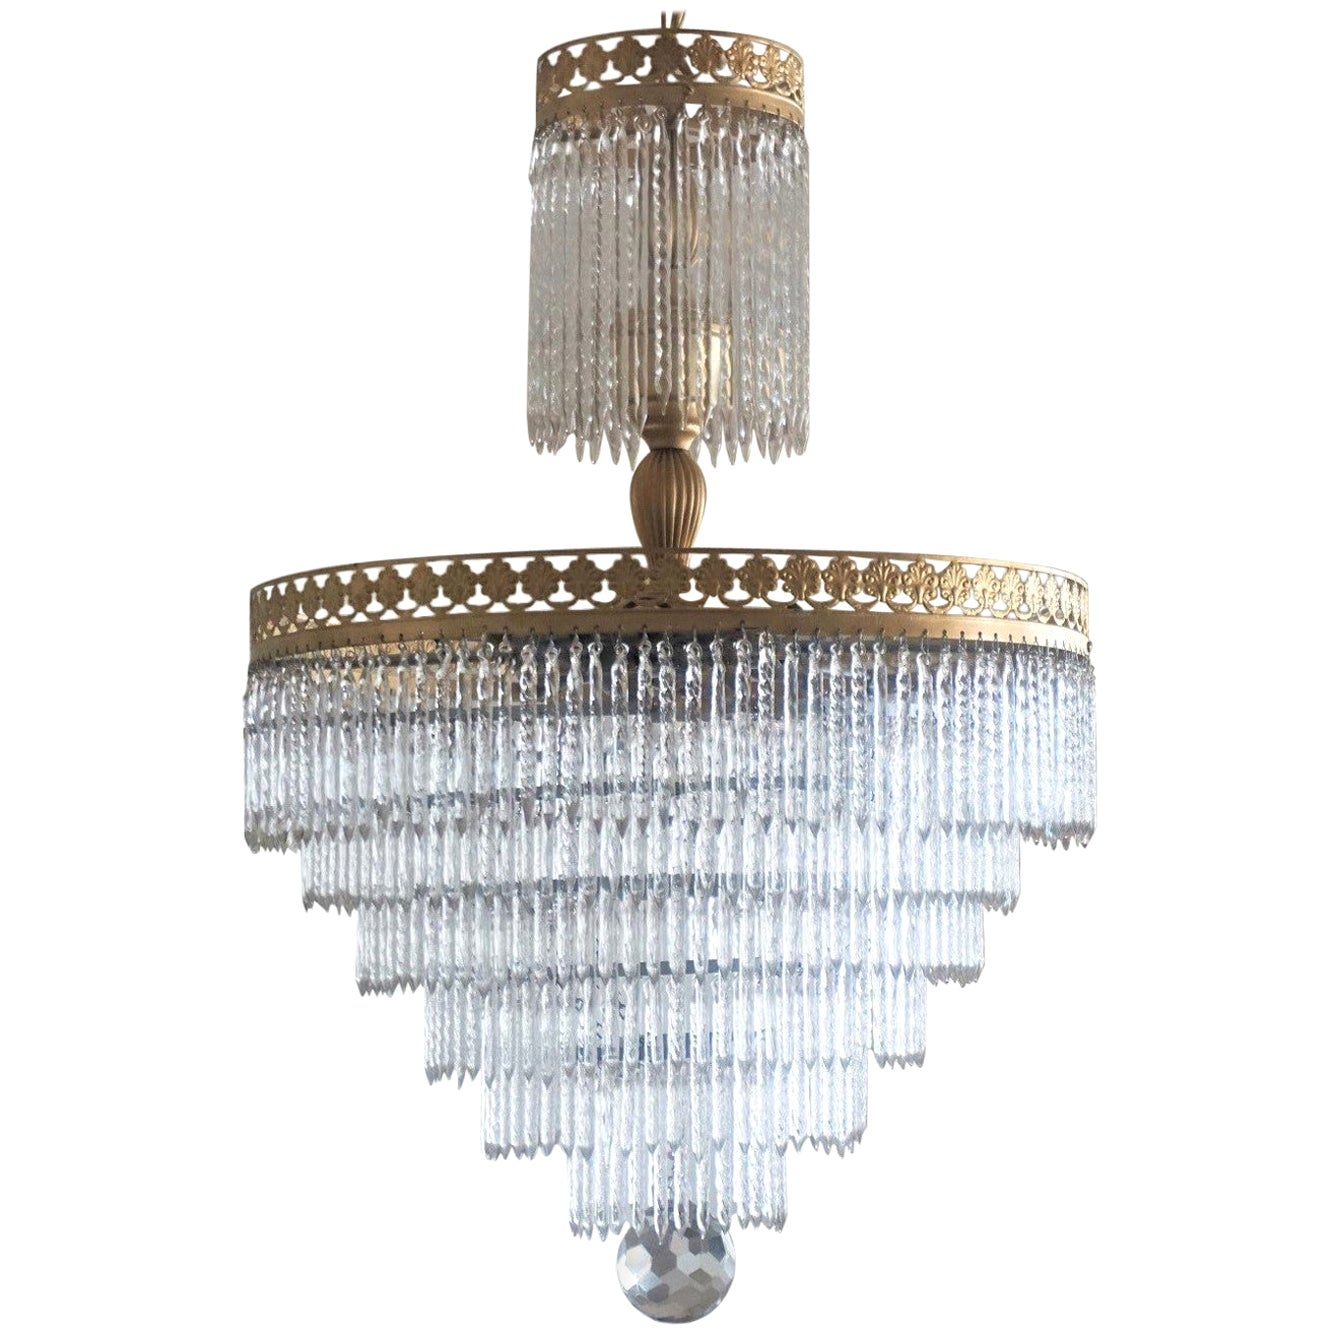 Midcentury Italian Murano Crystal Waterfall Seven-Light Chandelier